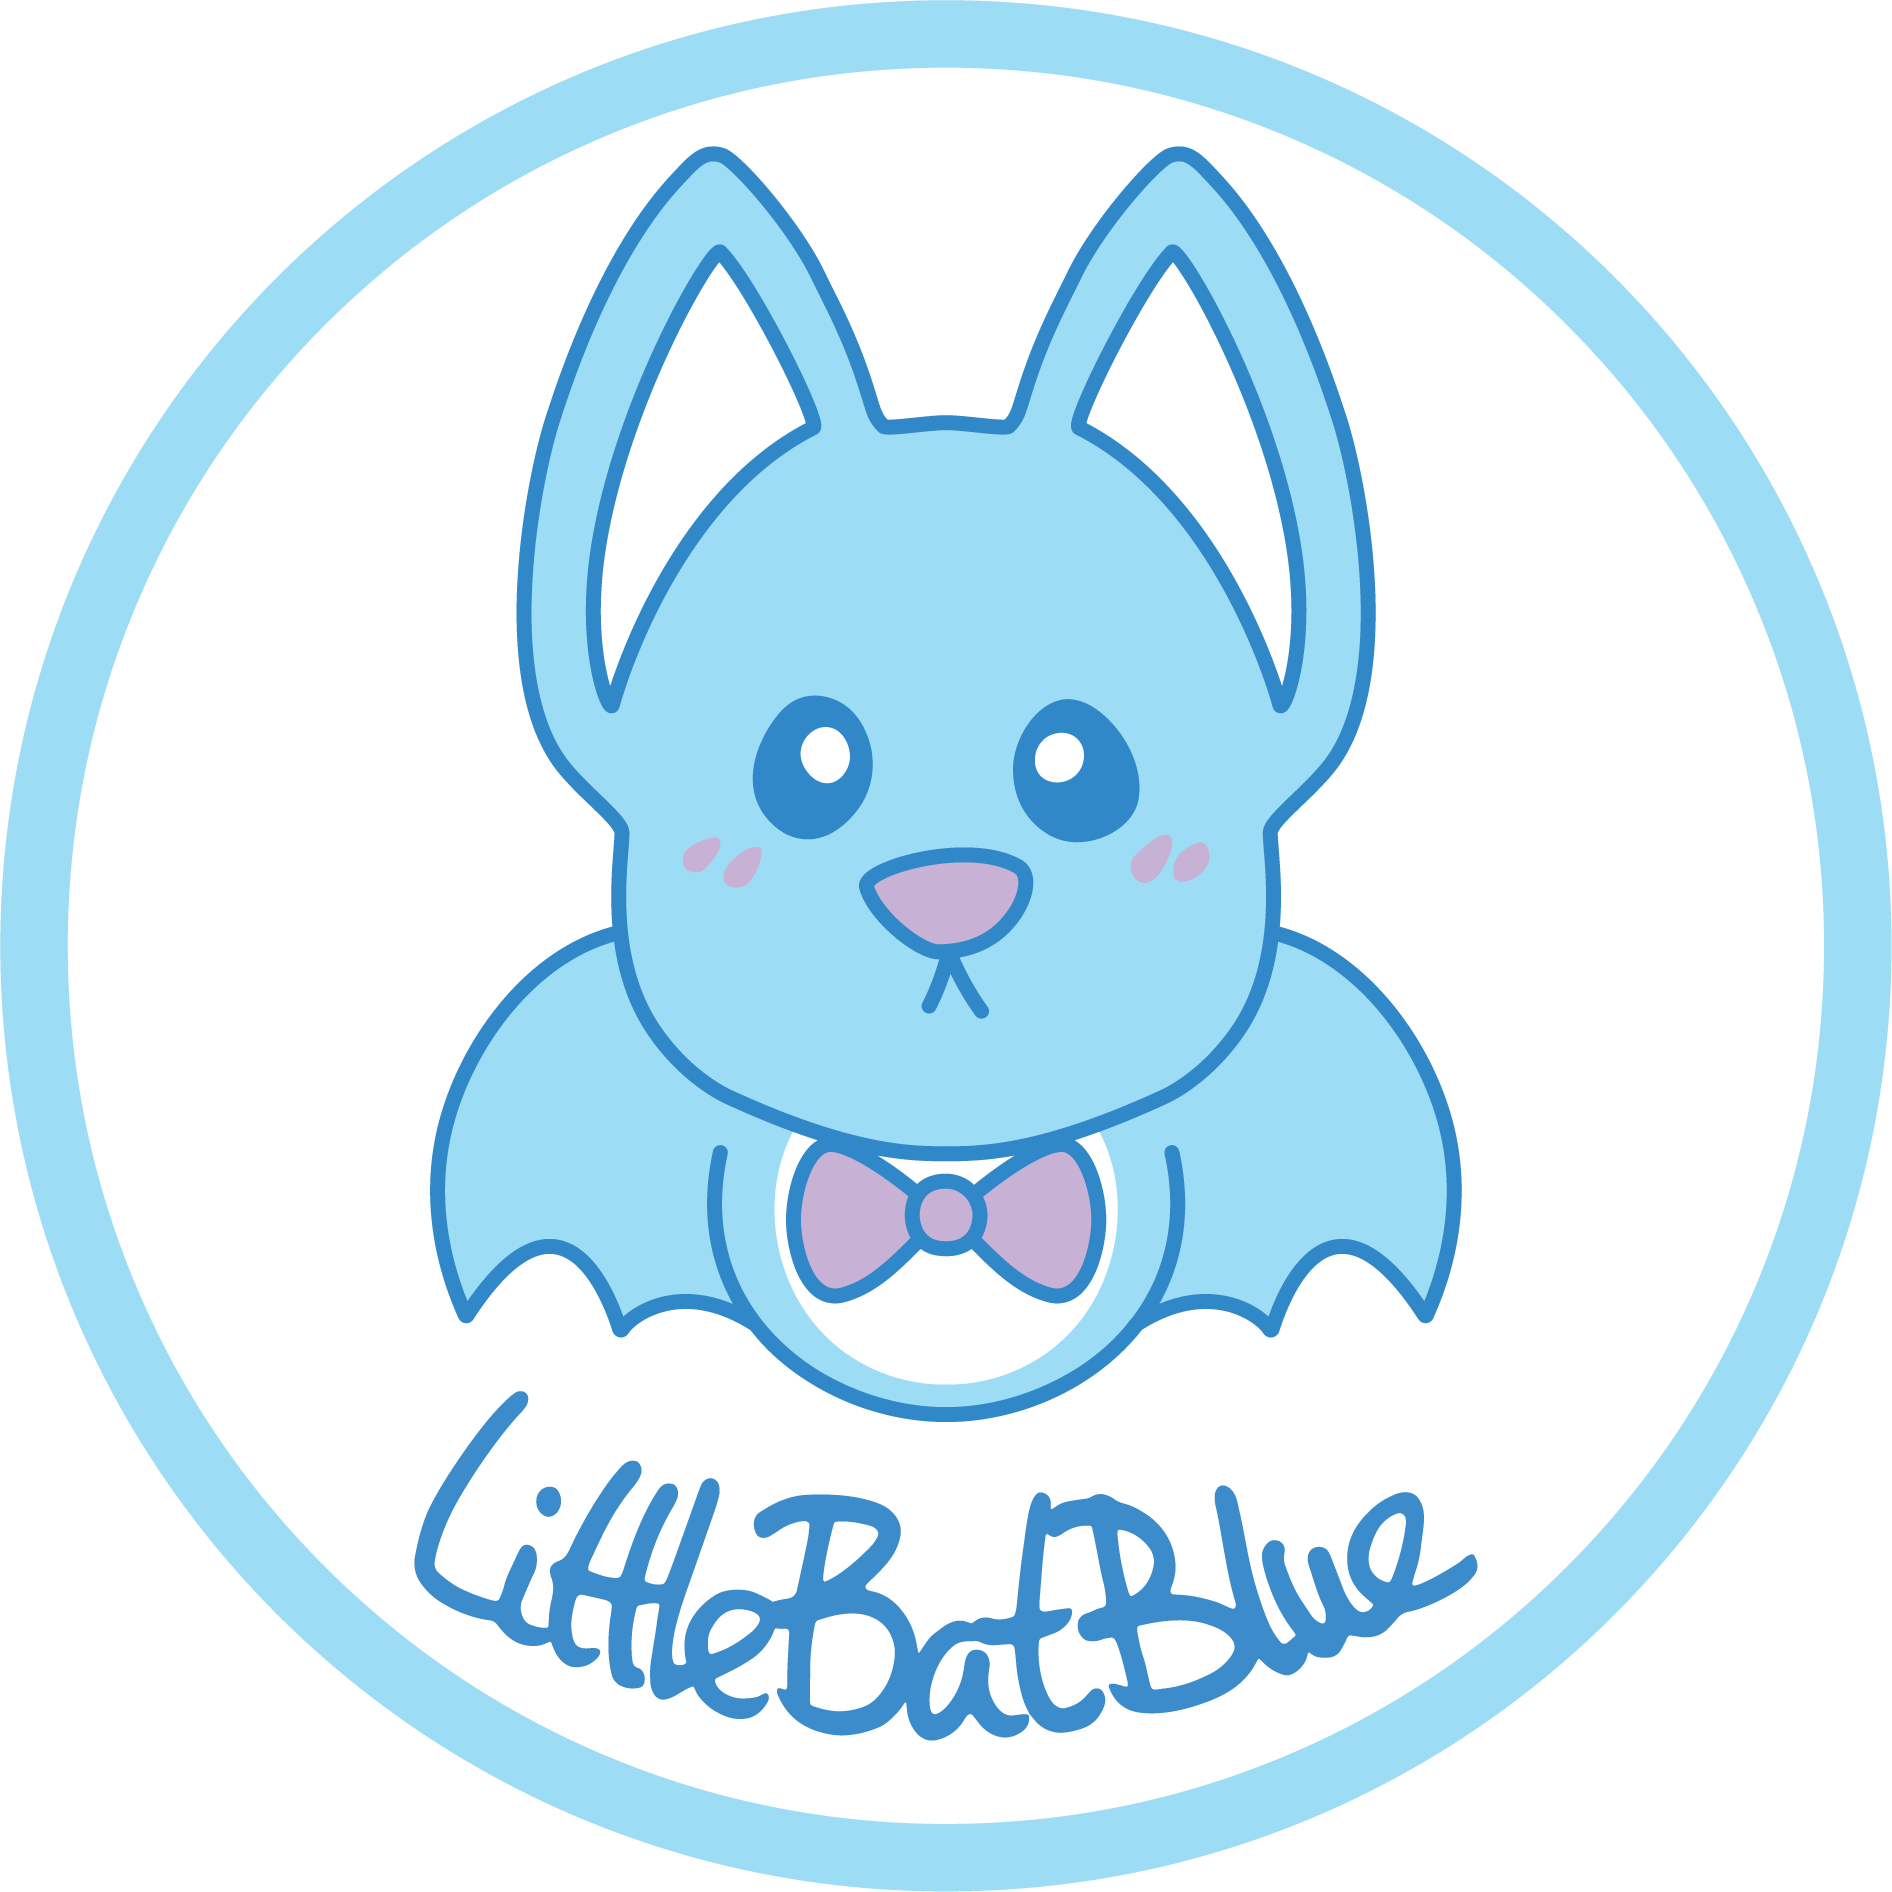 LittleBatBlue